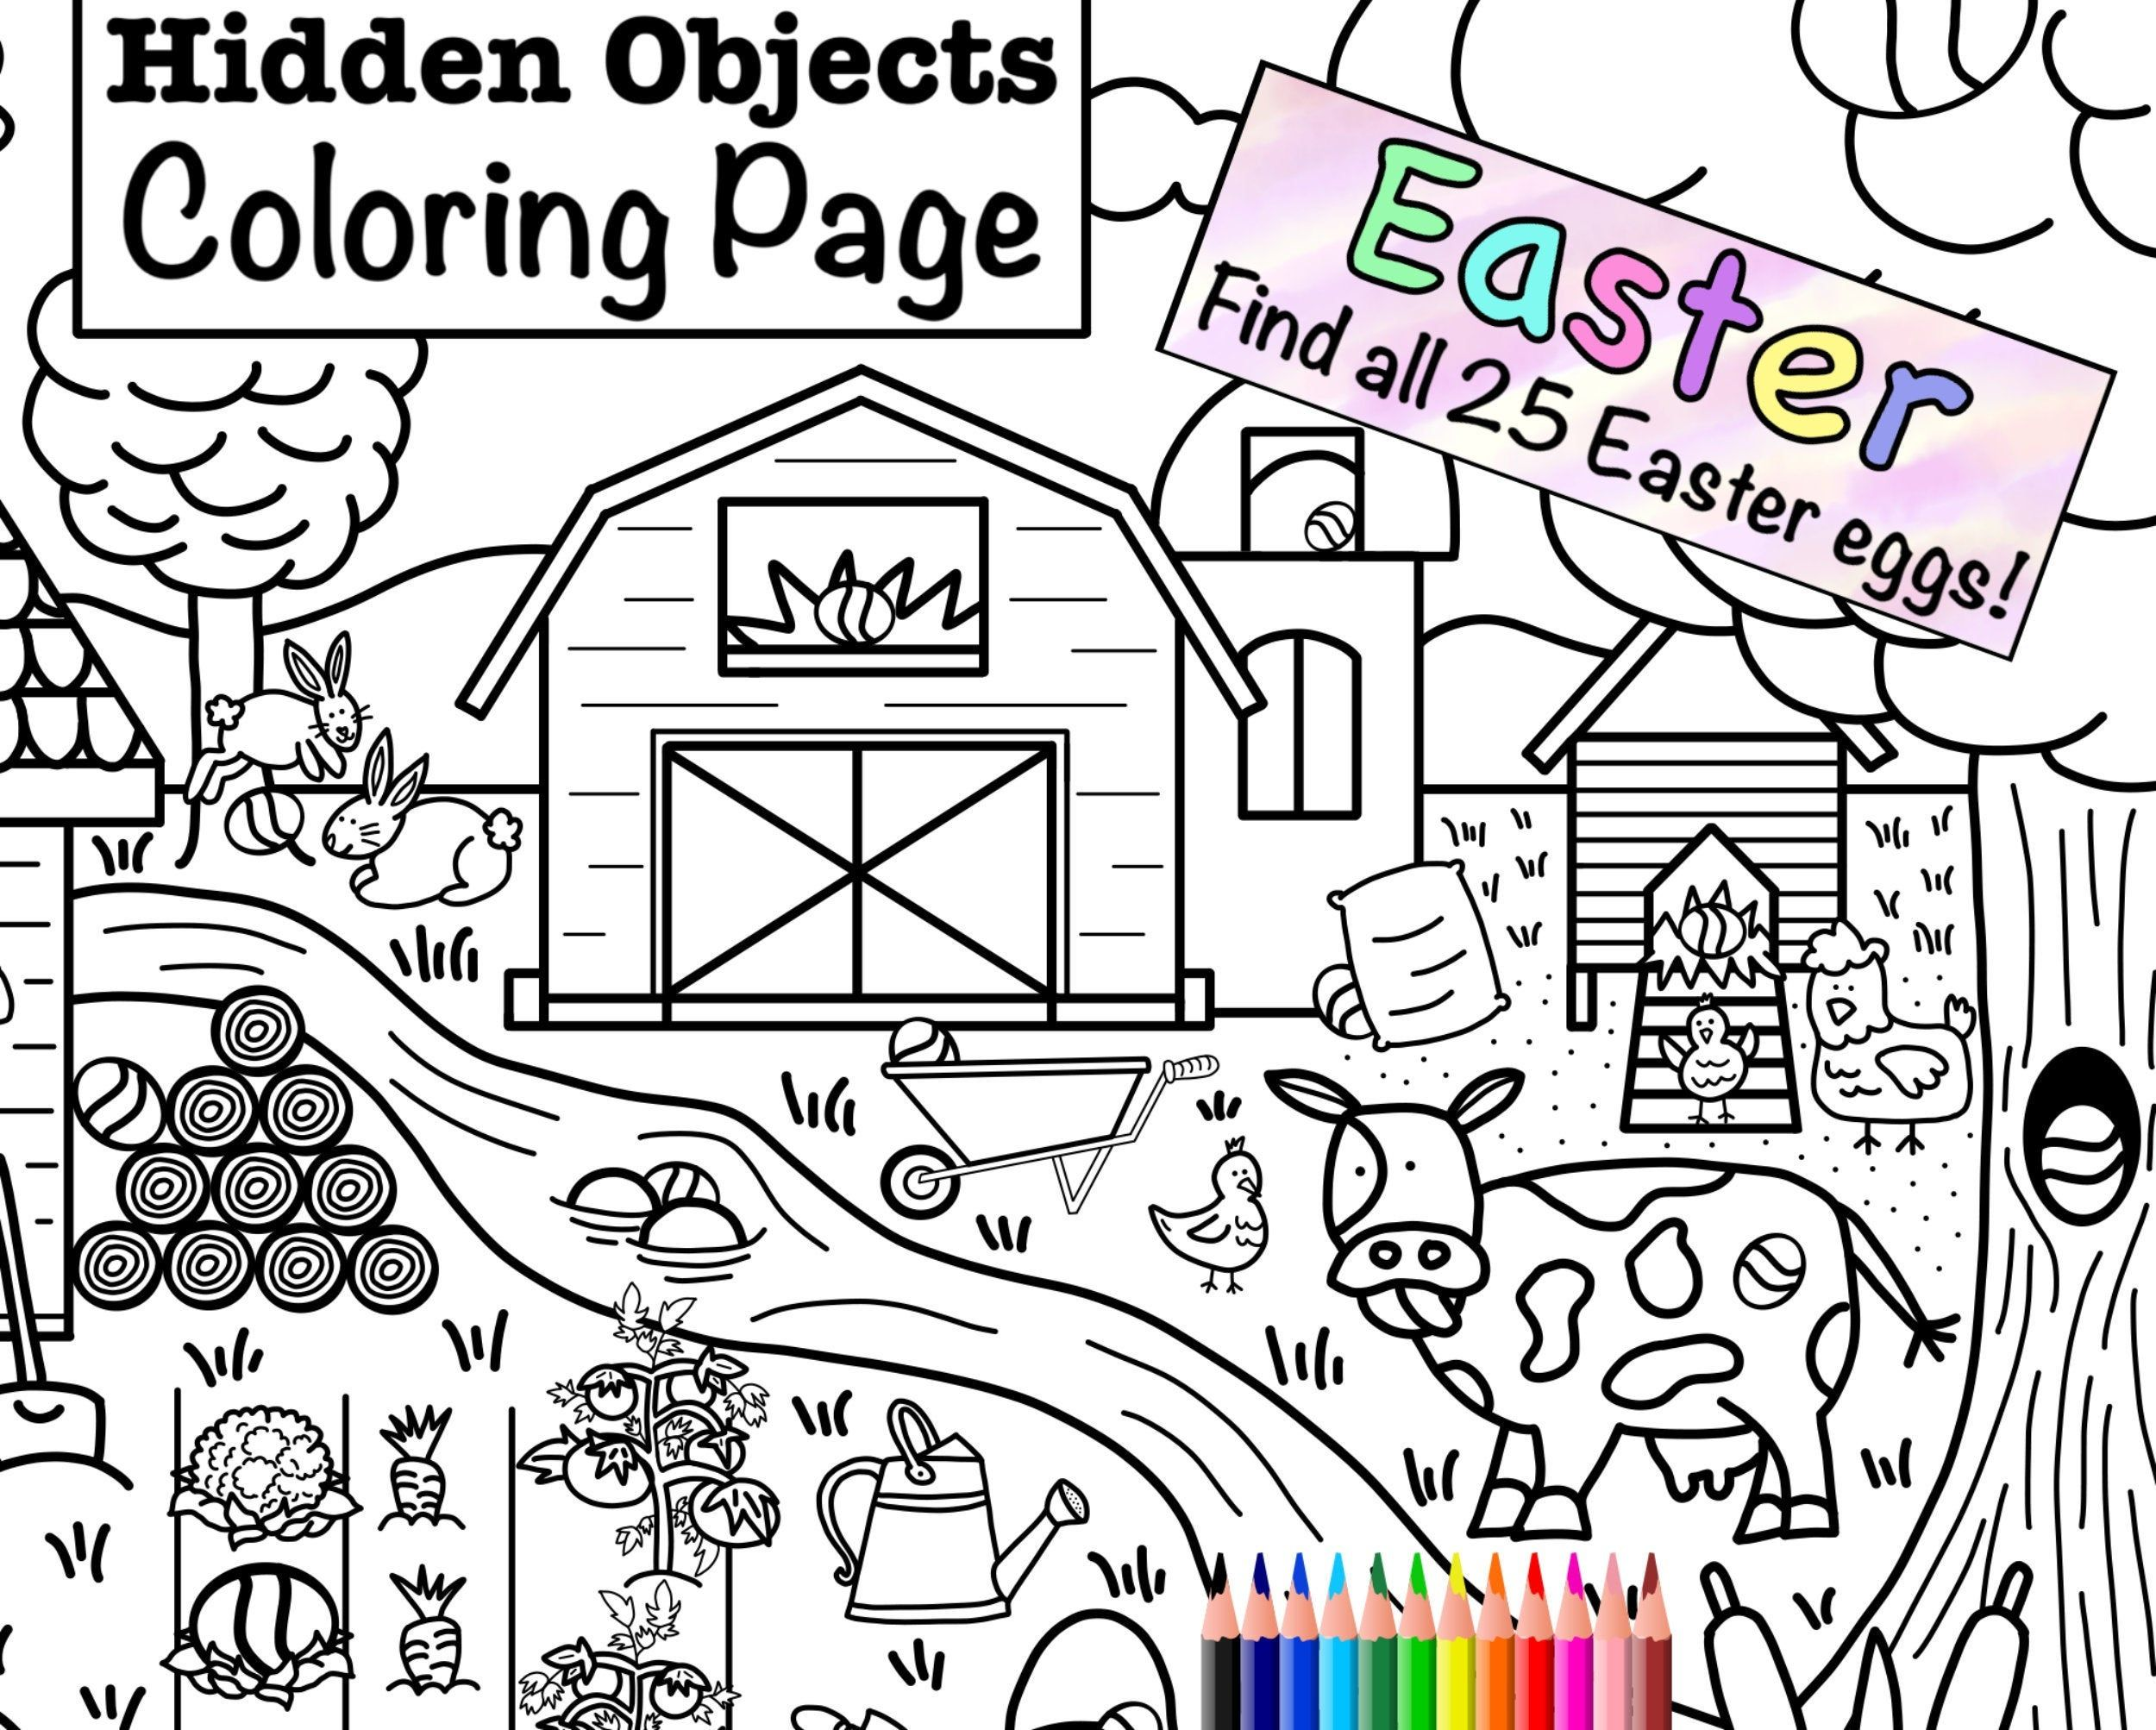 Now On Sale For Only 2 00 Download This Hidden Easter Egg Coloring Page Today Https Coloring Pages Easter Coloring Pages Unicorn Coloring Pages